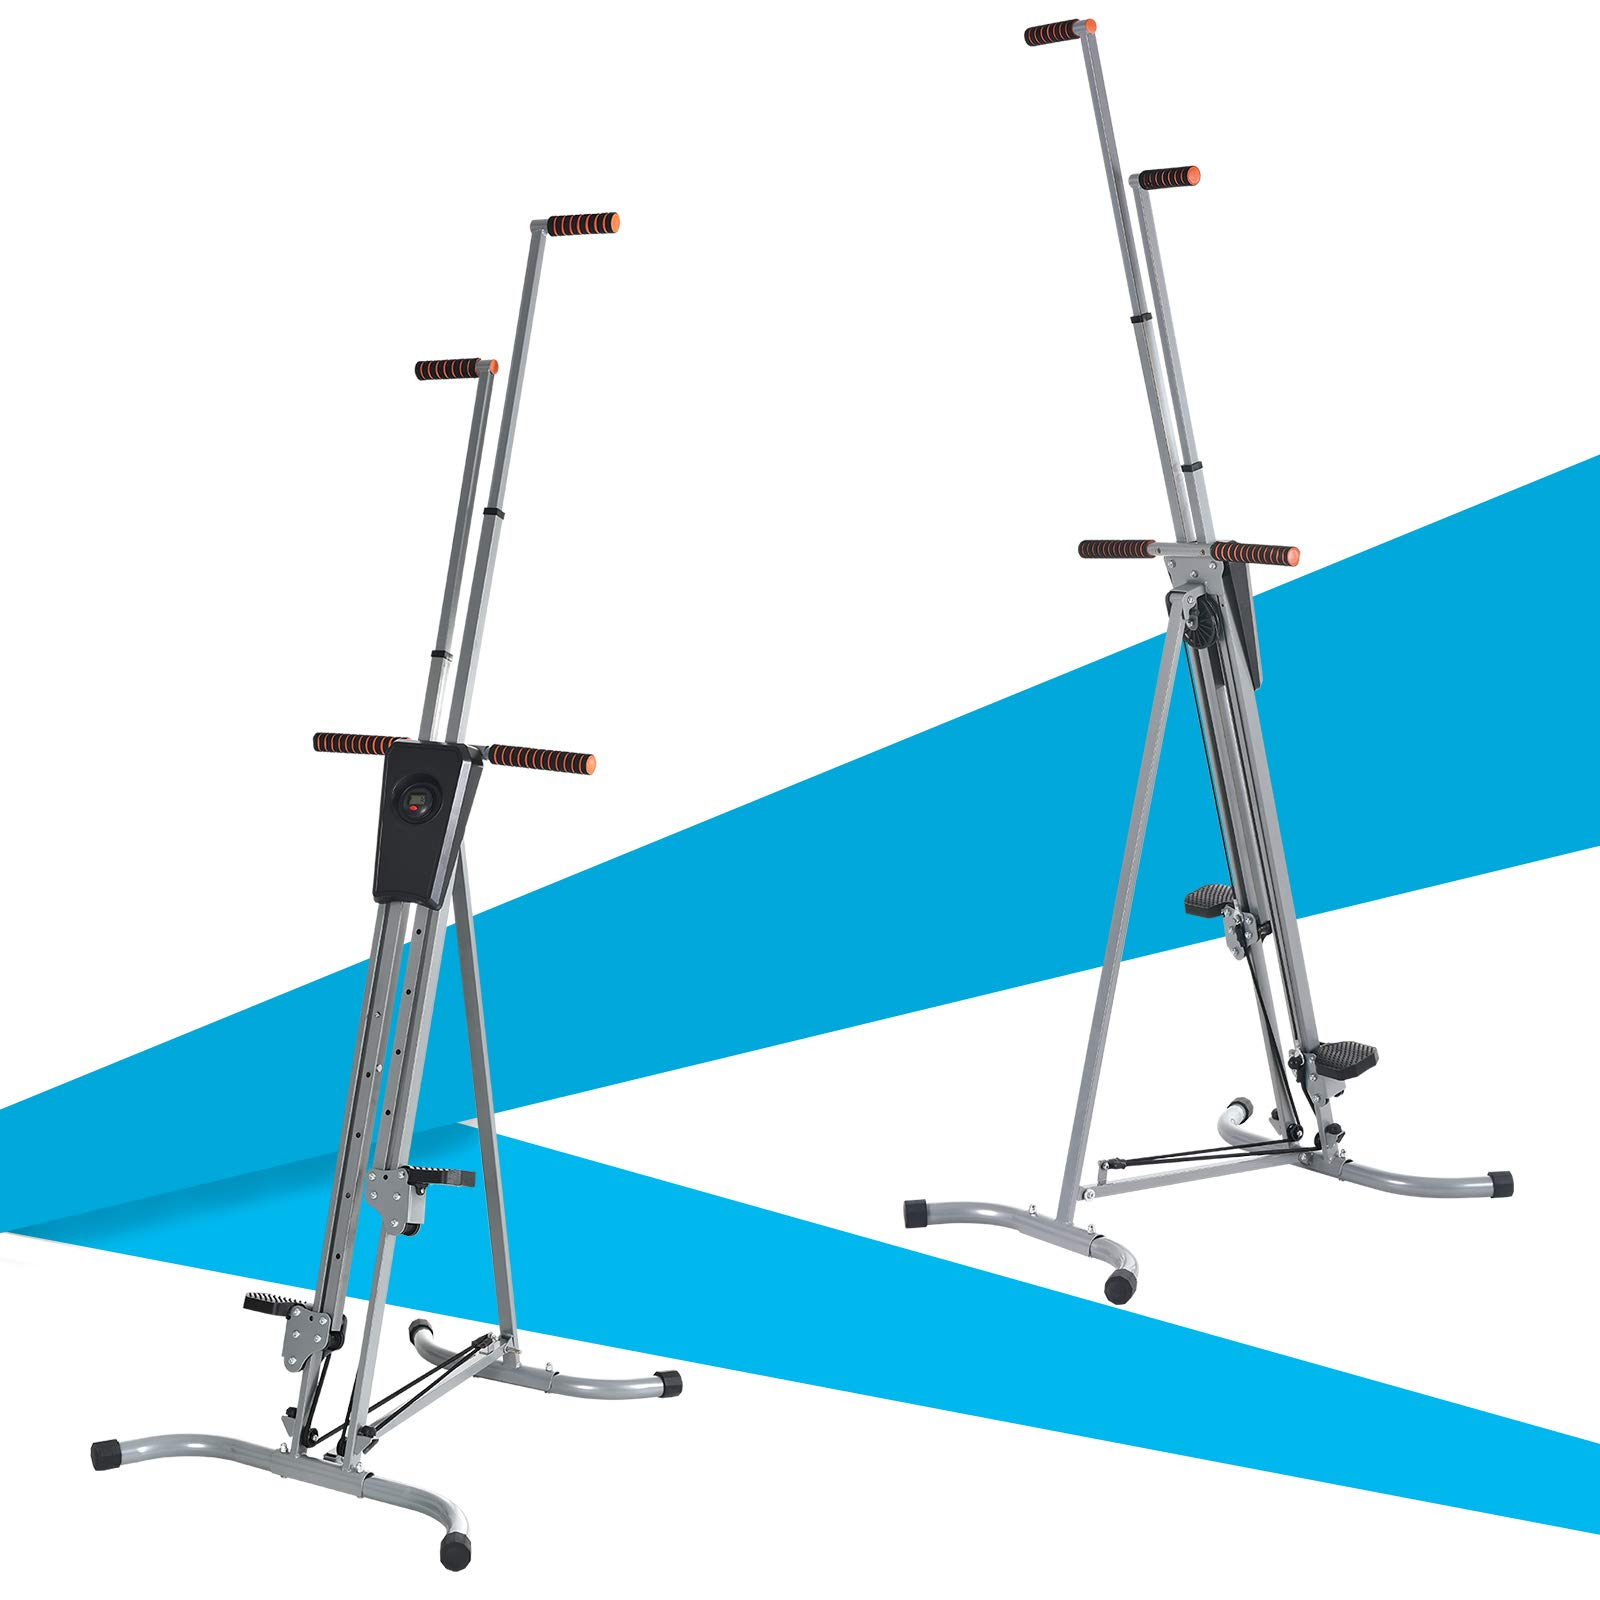 Murtisol Exercise Climber Fitness Vertical Climbing Cardio Machine with LCD Monitor,Natural Climbing Experience for Home Body Trainer by Murtisol (Image #6)